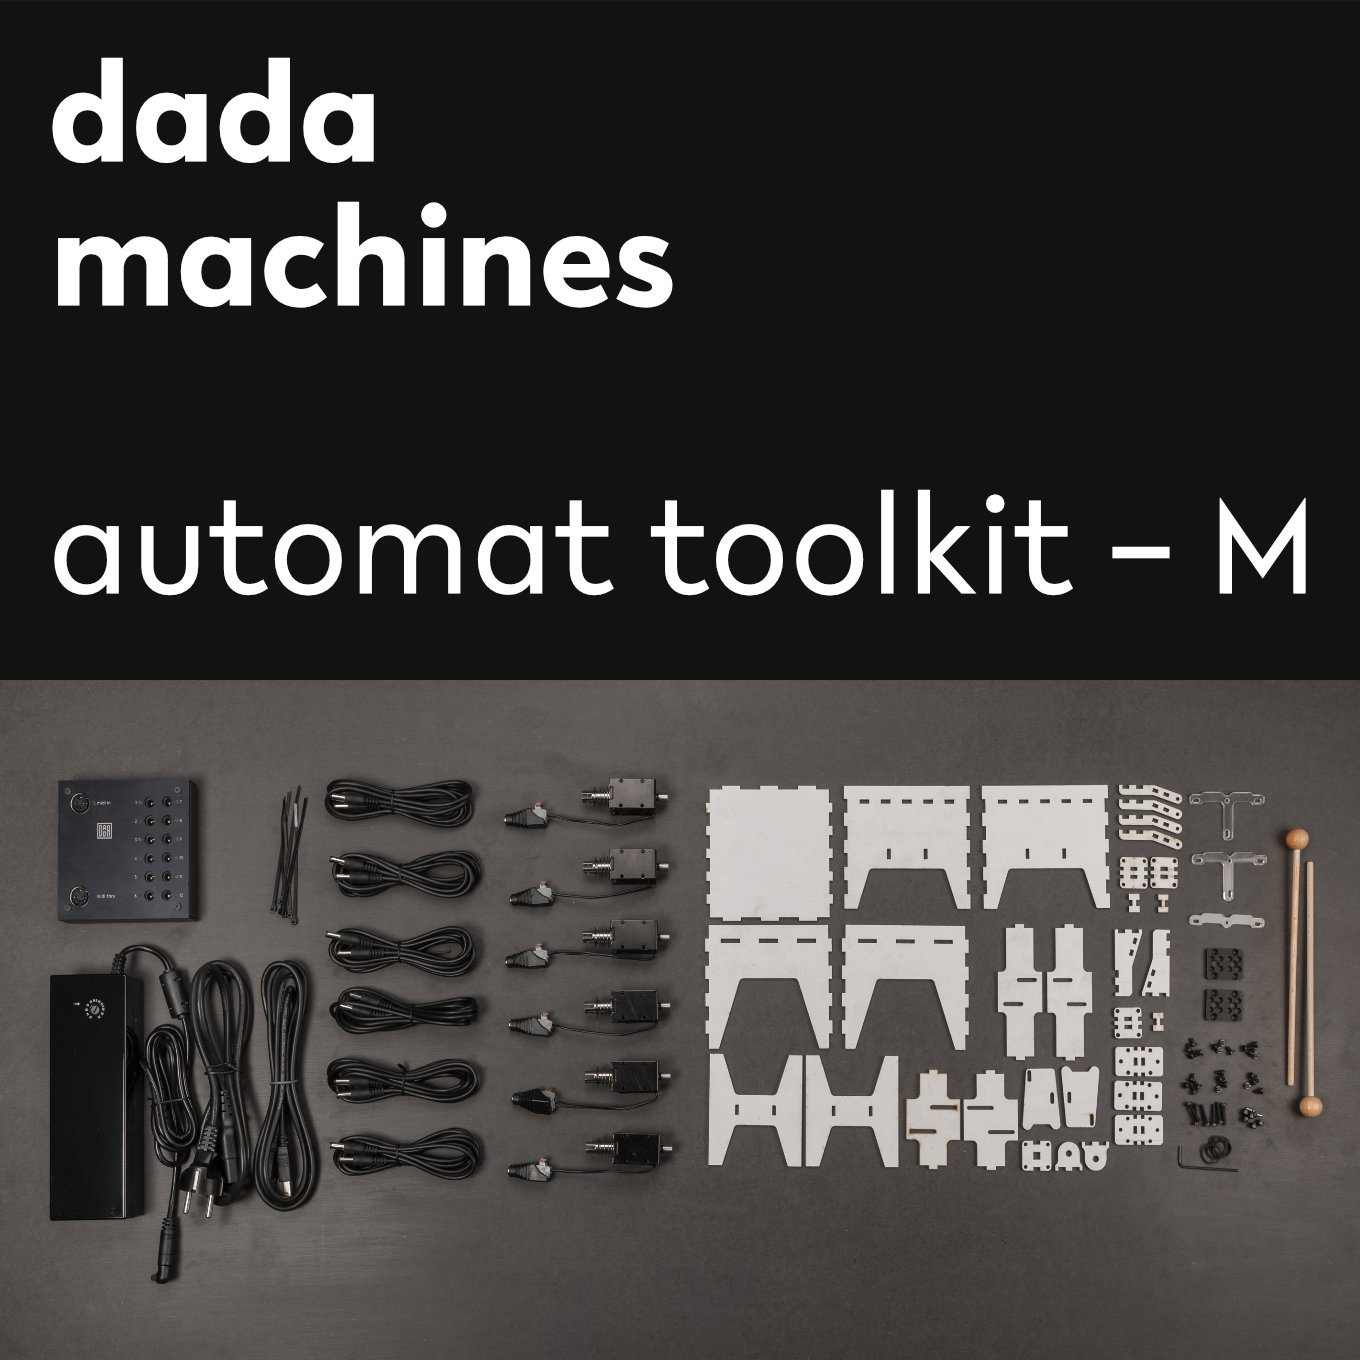 automat toolkit - M - PRE-ORDER